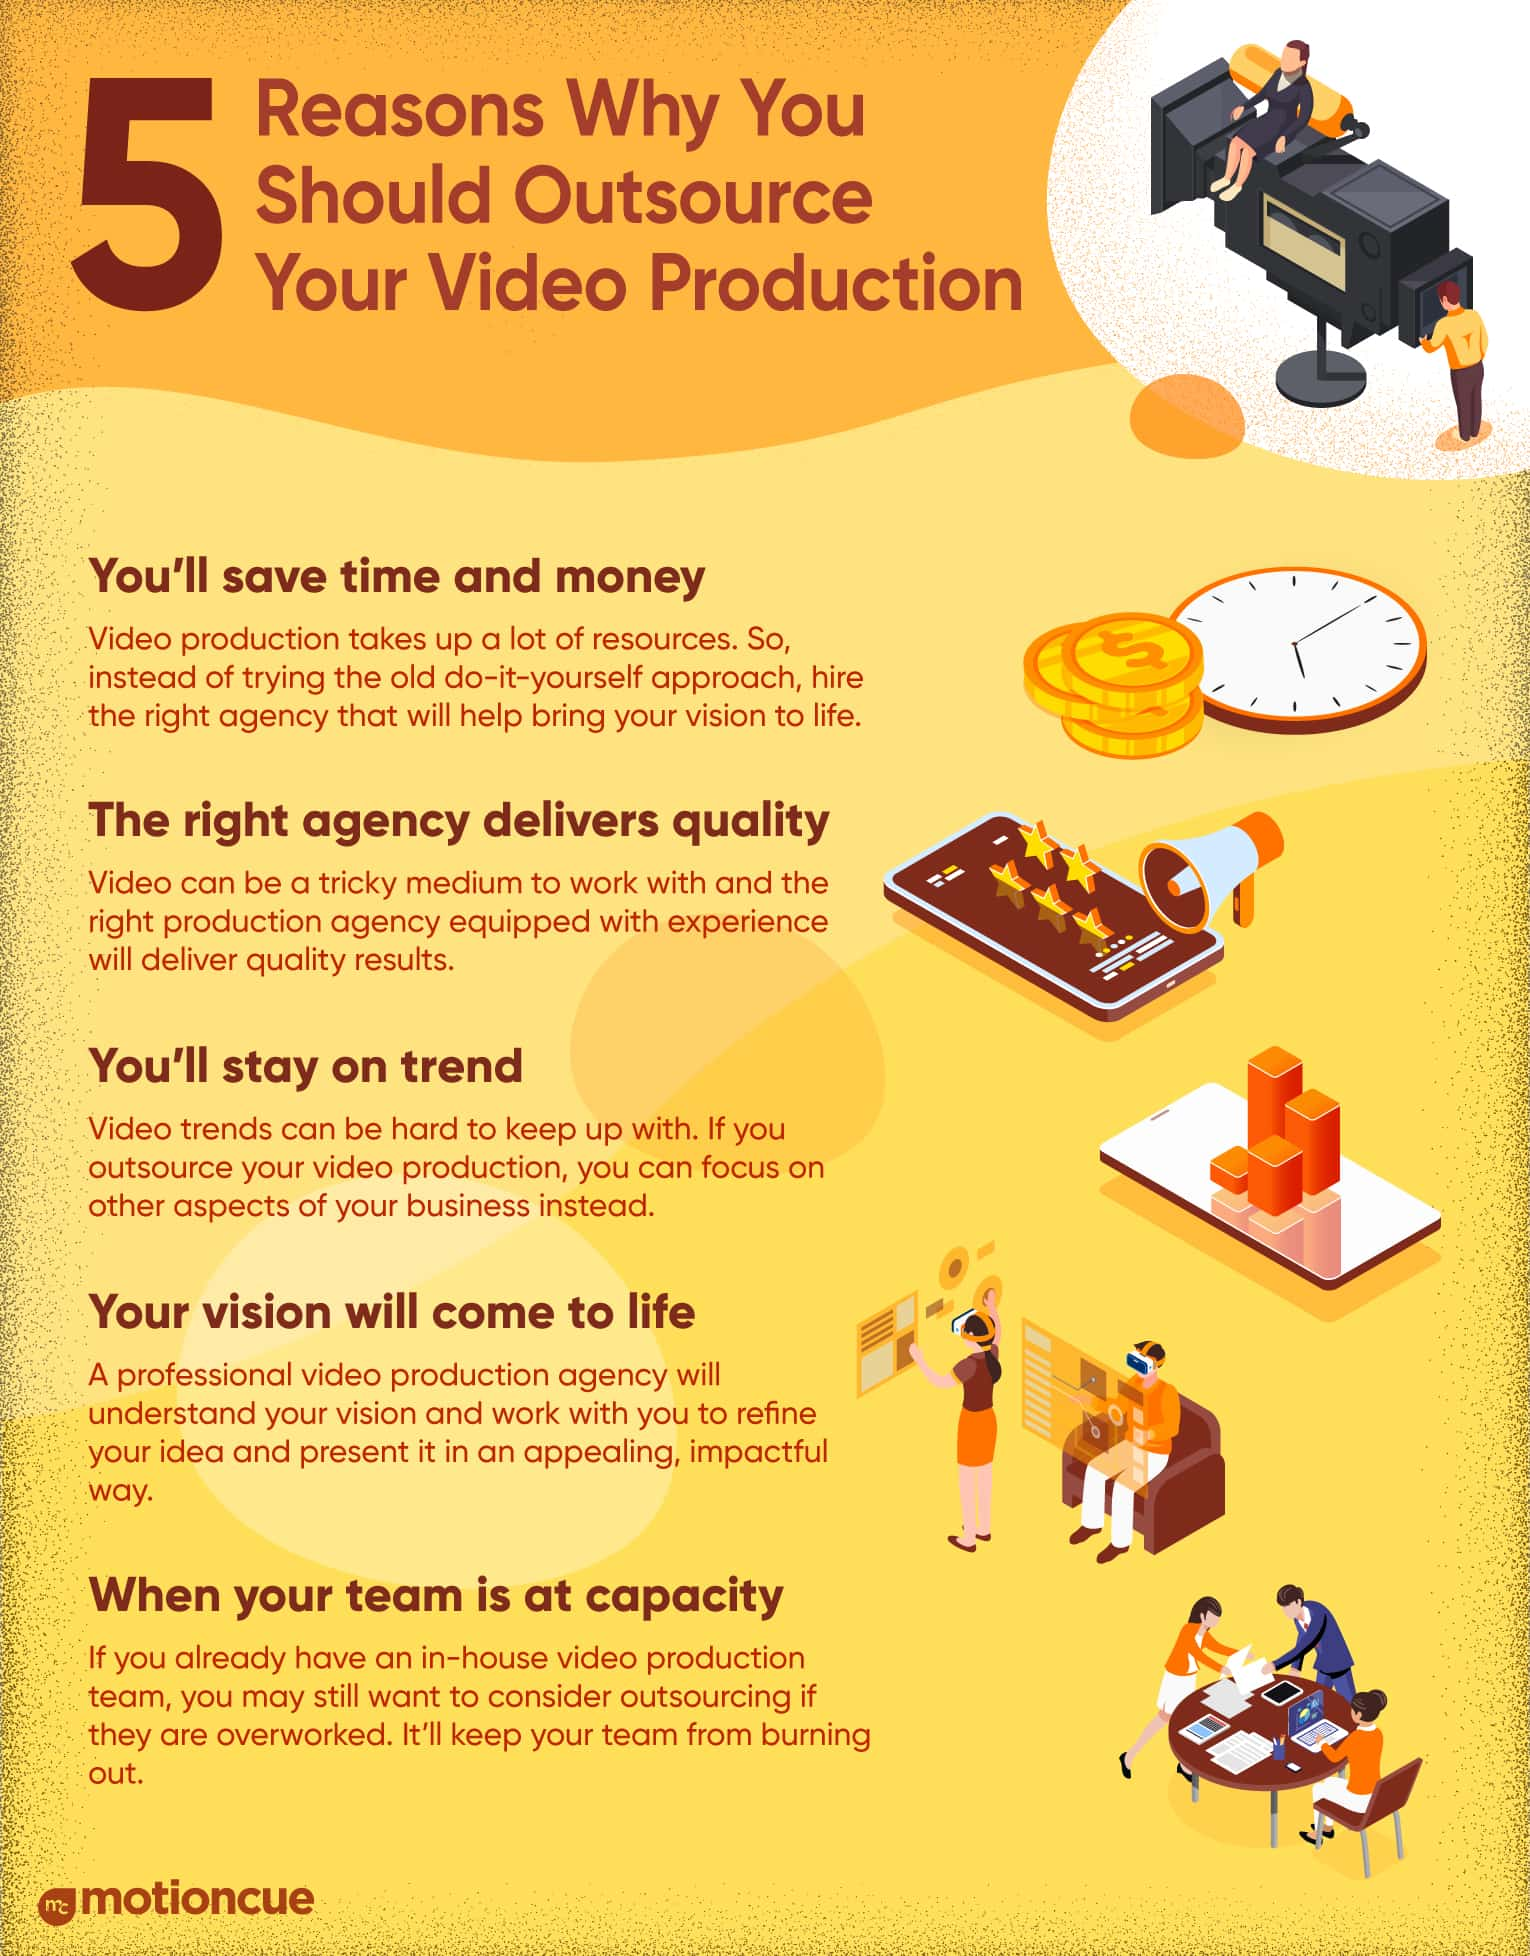 Infographic by MotionCue - Why to Outsource Video Production